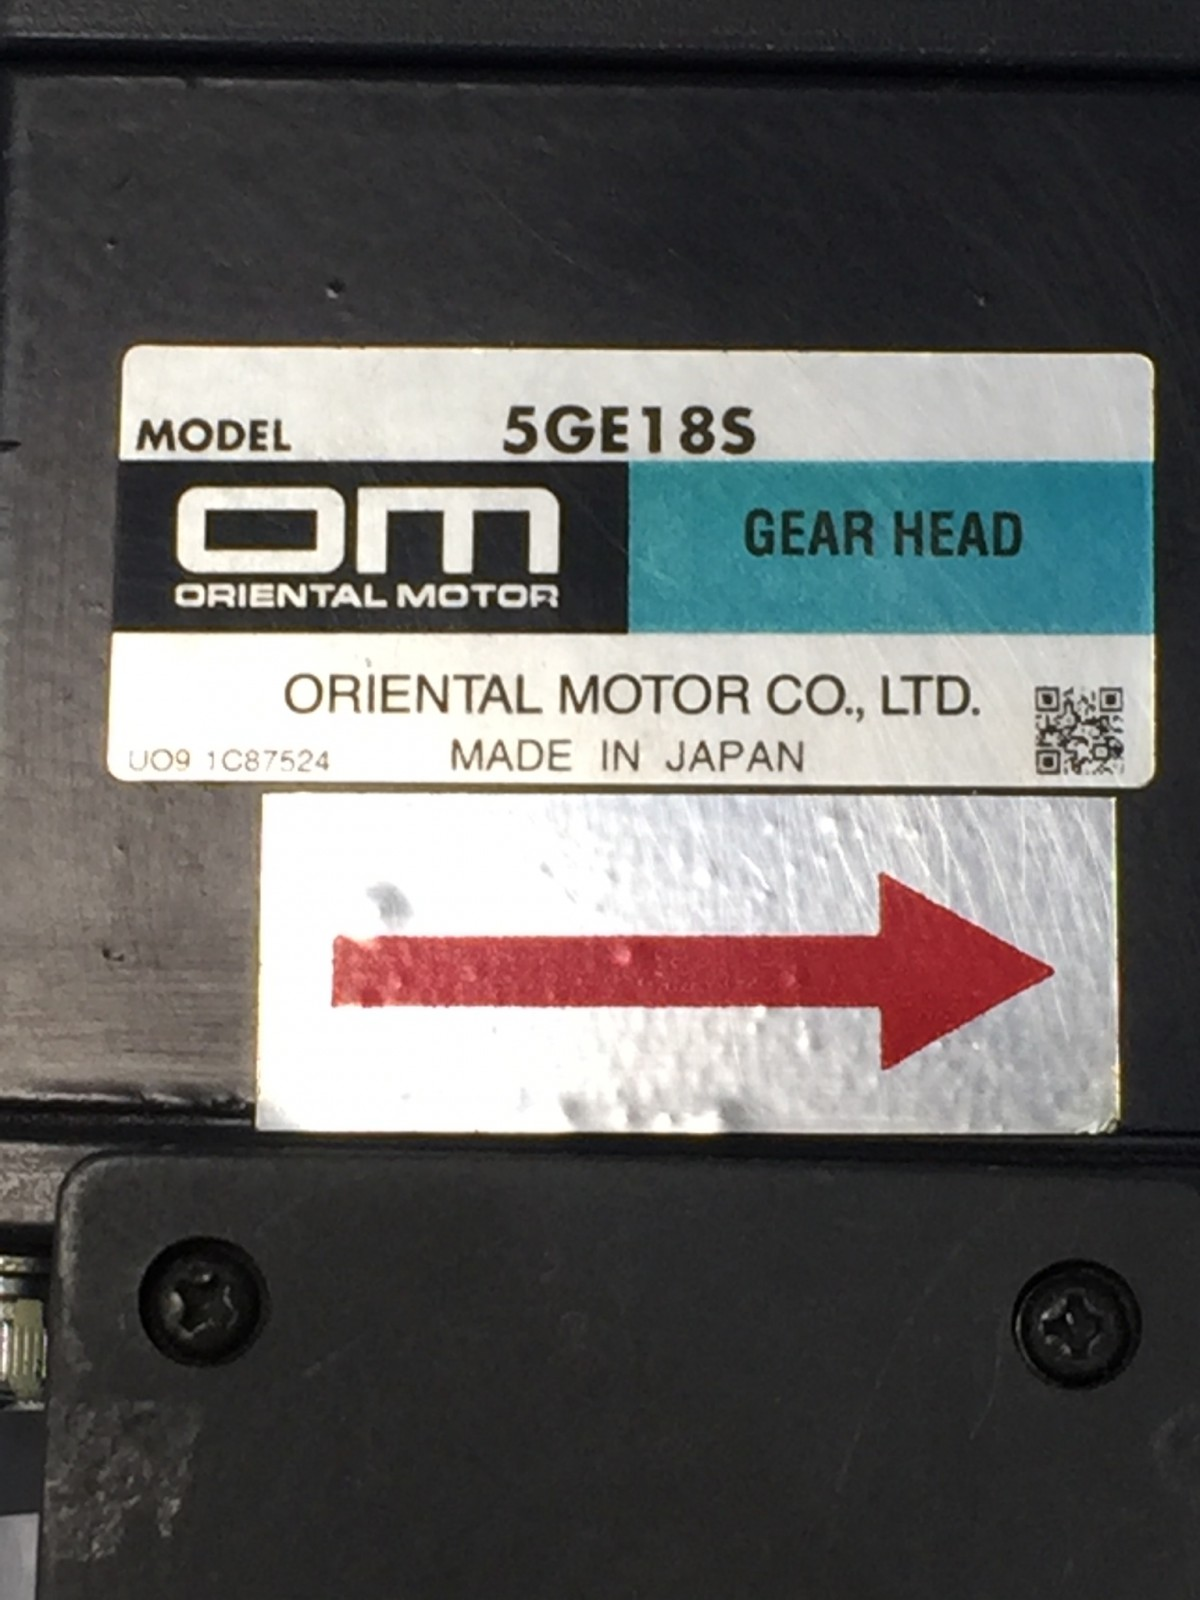 ORIENTAL MOTOR 5GE18S GEAR HEAD / 5IK60GE-AW2T INDUCTION MOTOR